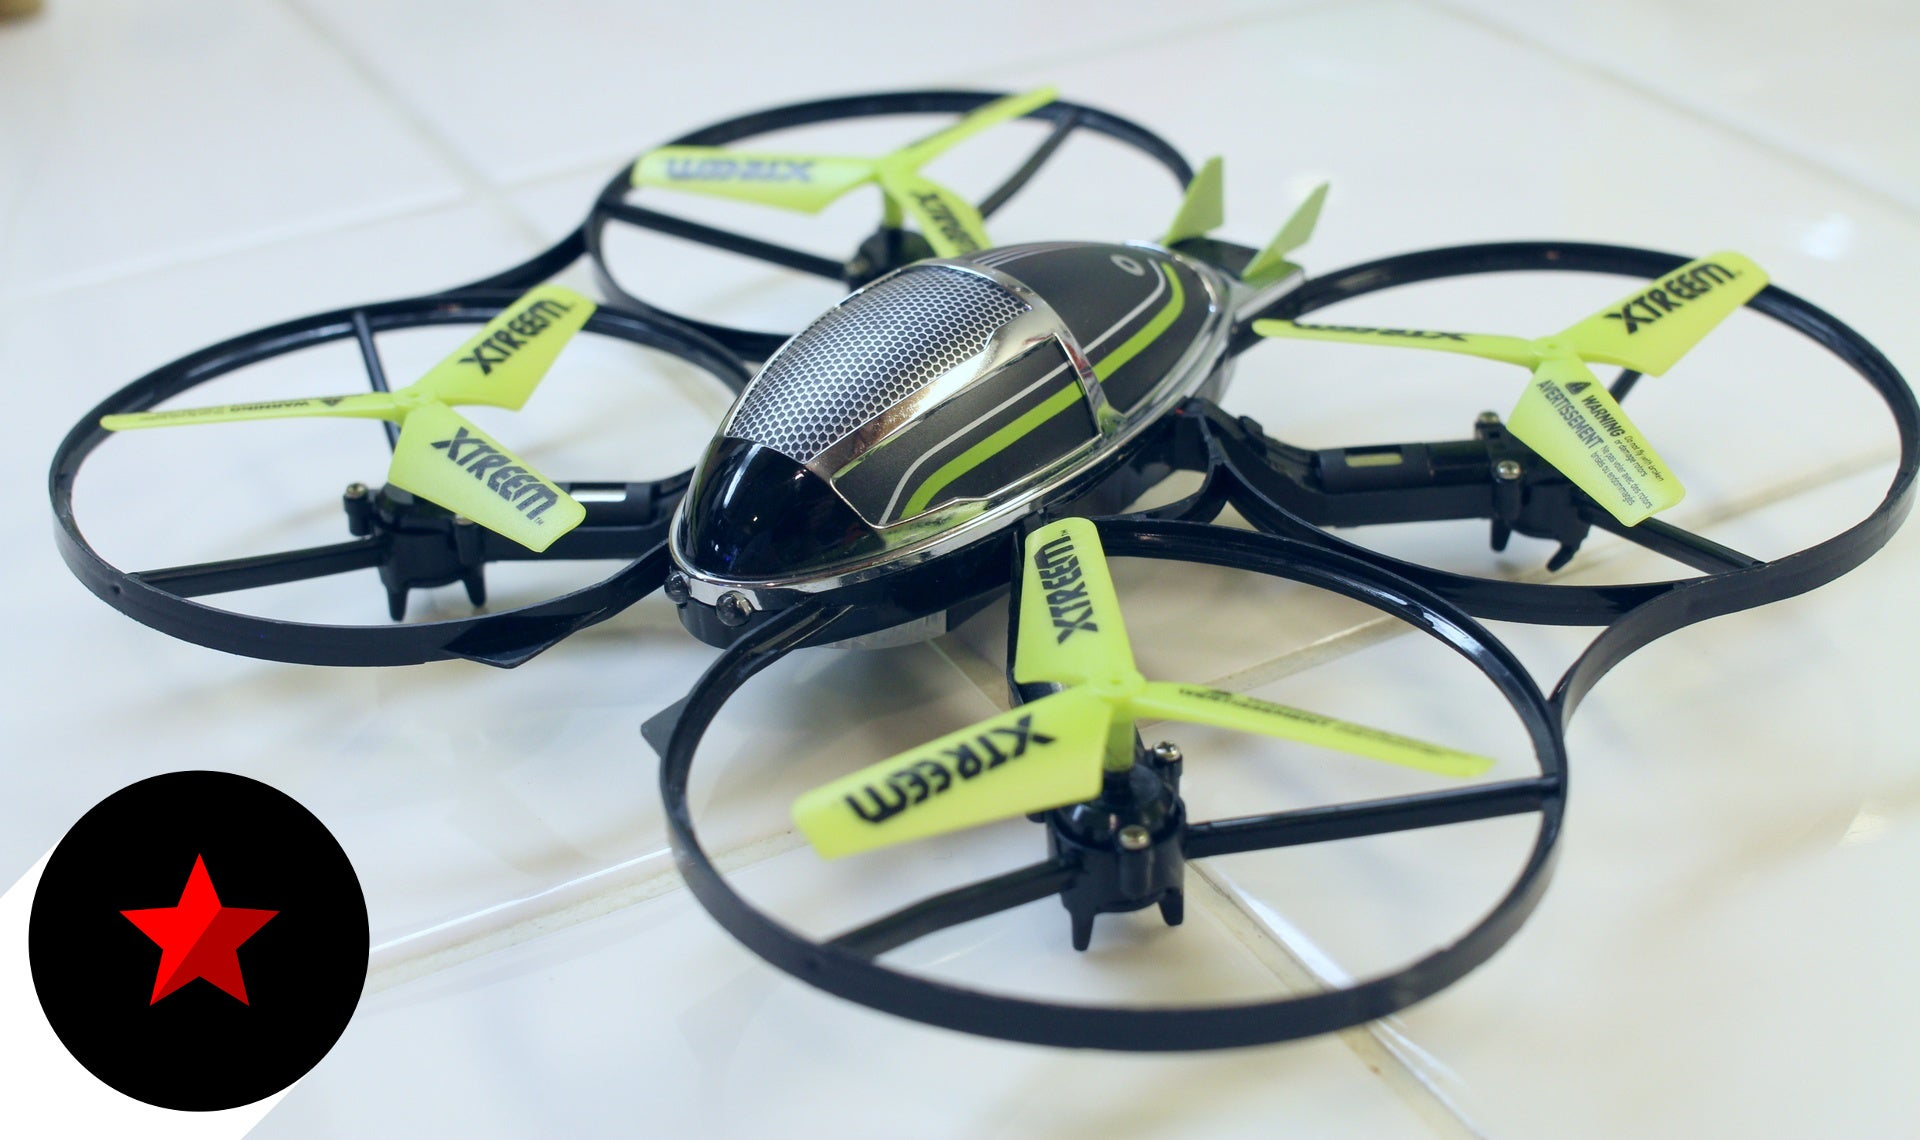 The Best Indoor Drone For Every Need